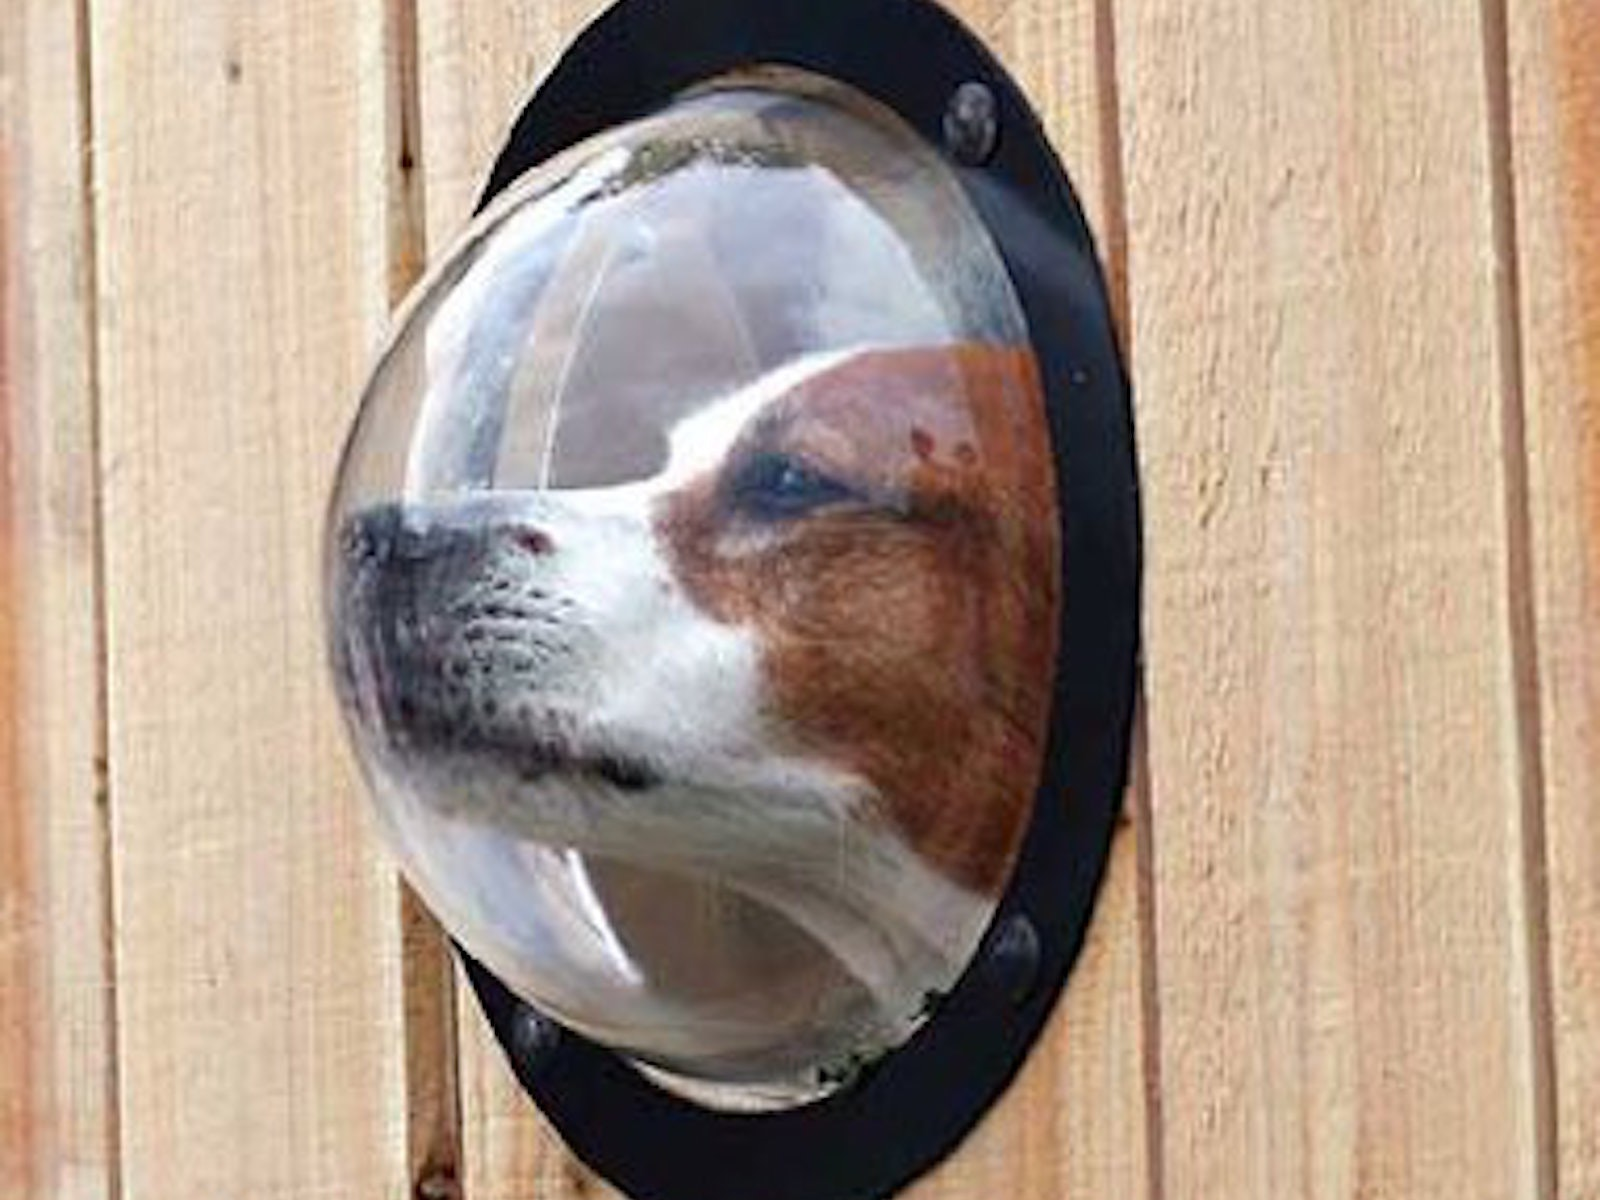 This fence window for your doggo